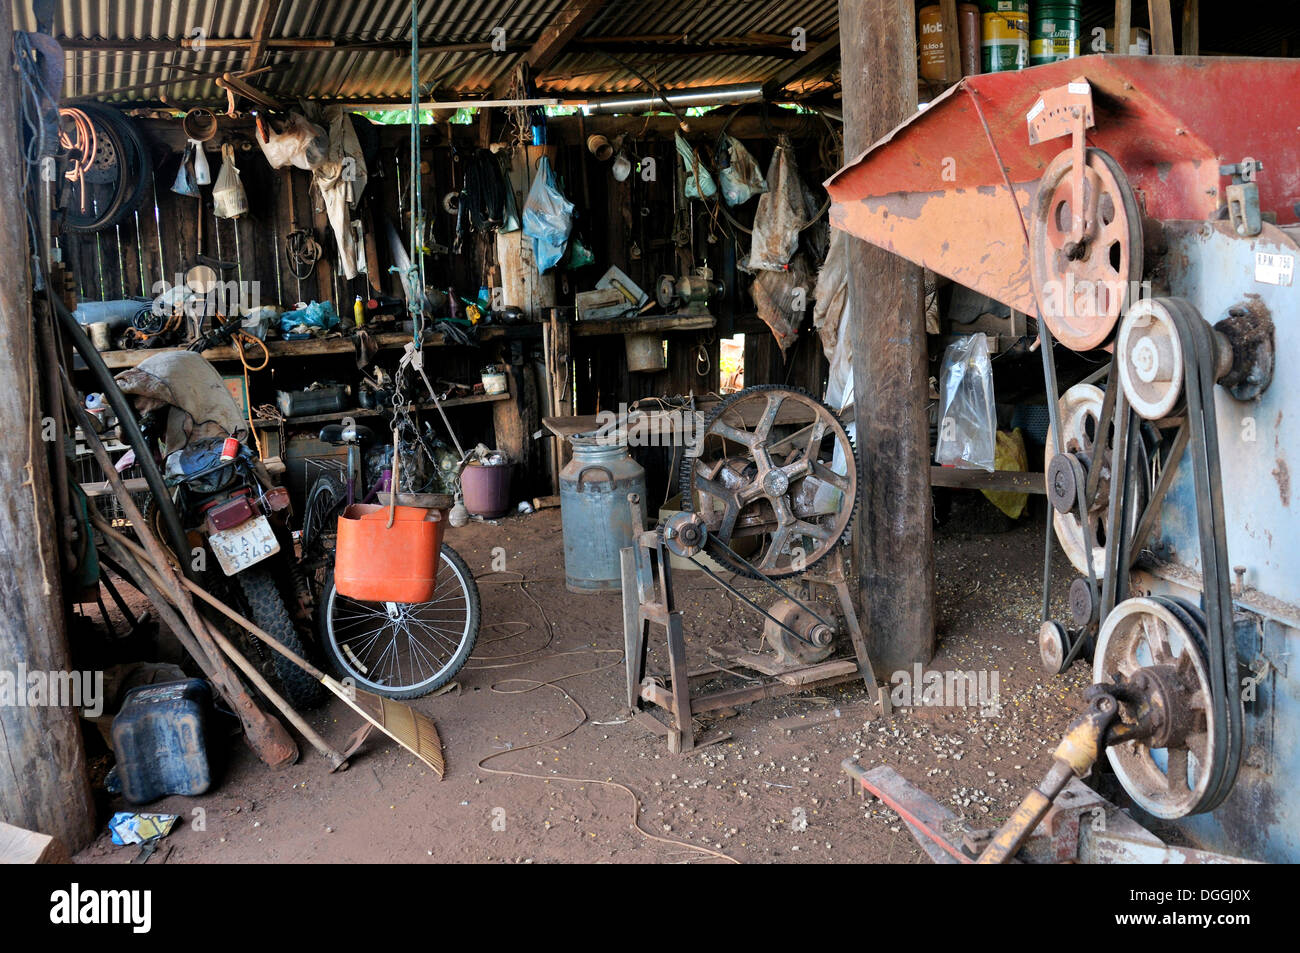 Workshop and spare parts store on a farm, Mato Grosso, Brazil, South America - Stock Image